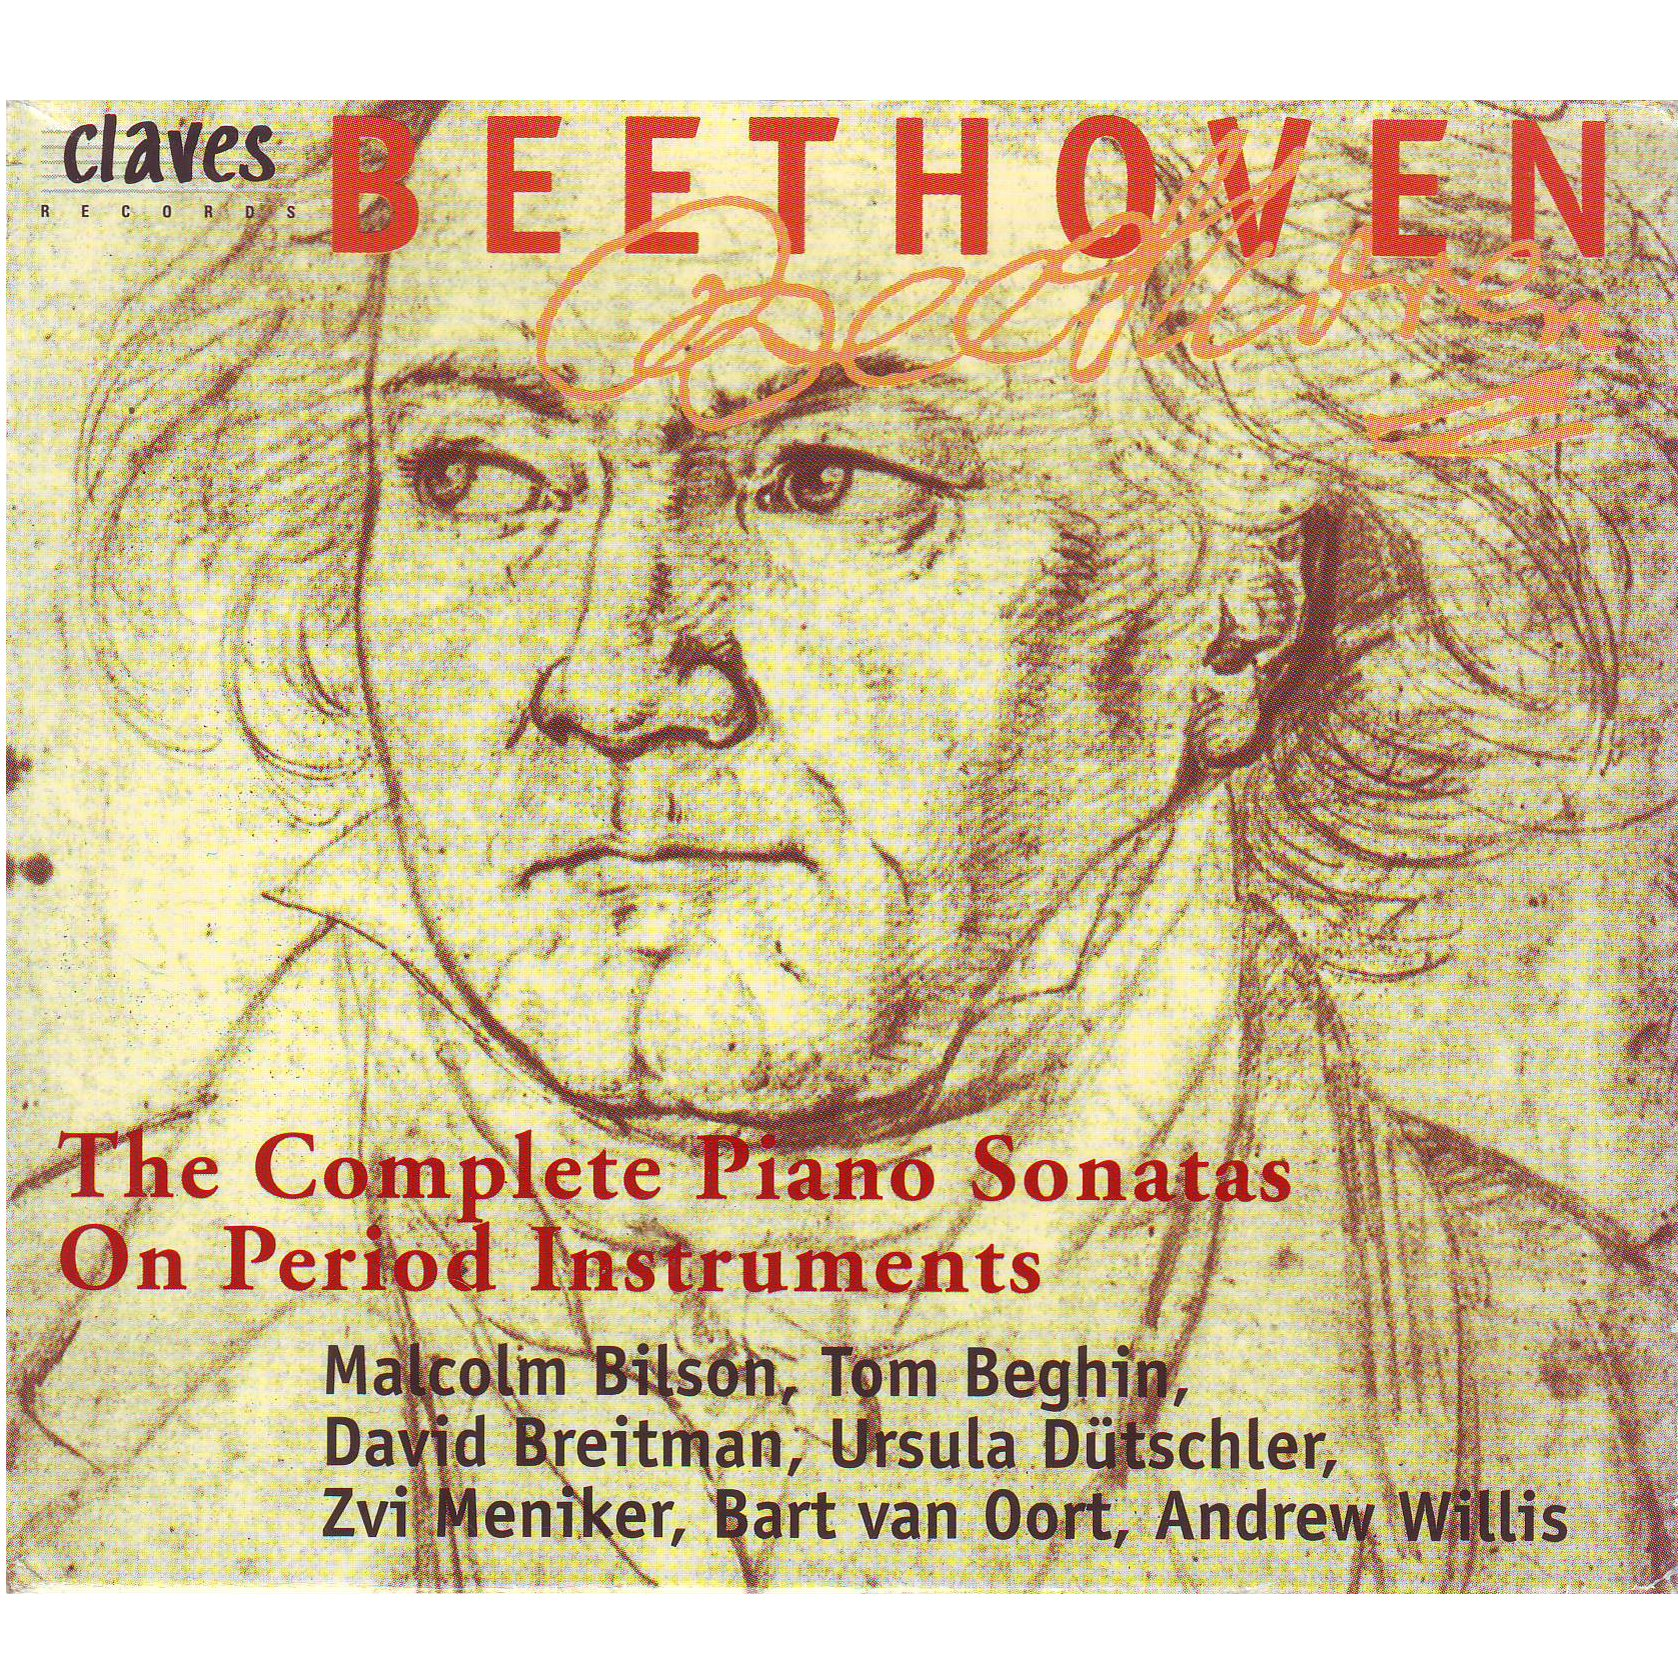 The Complete Beethoven Sonatas.